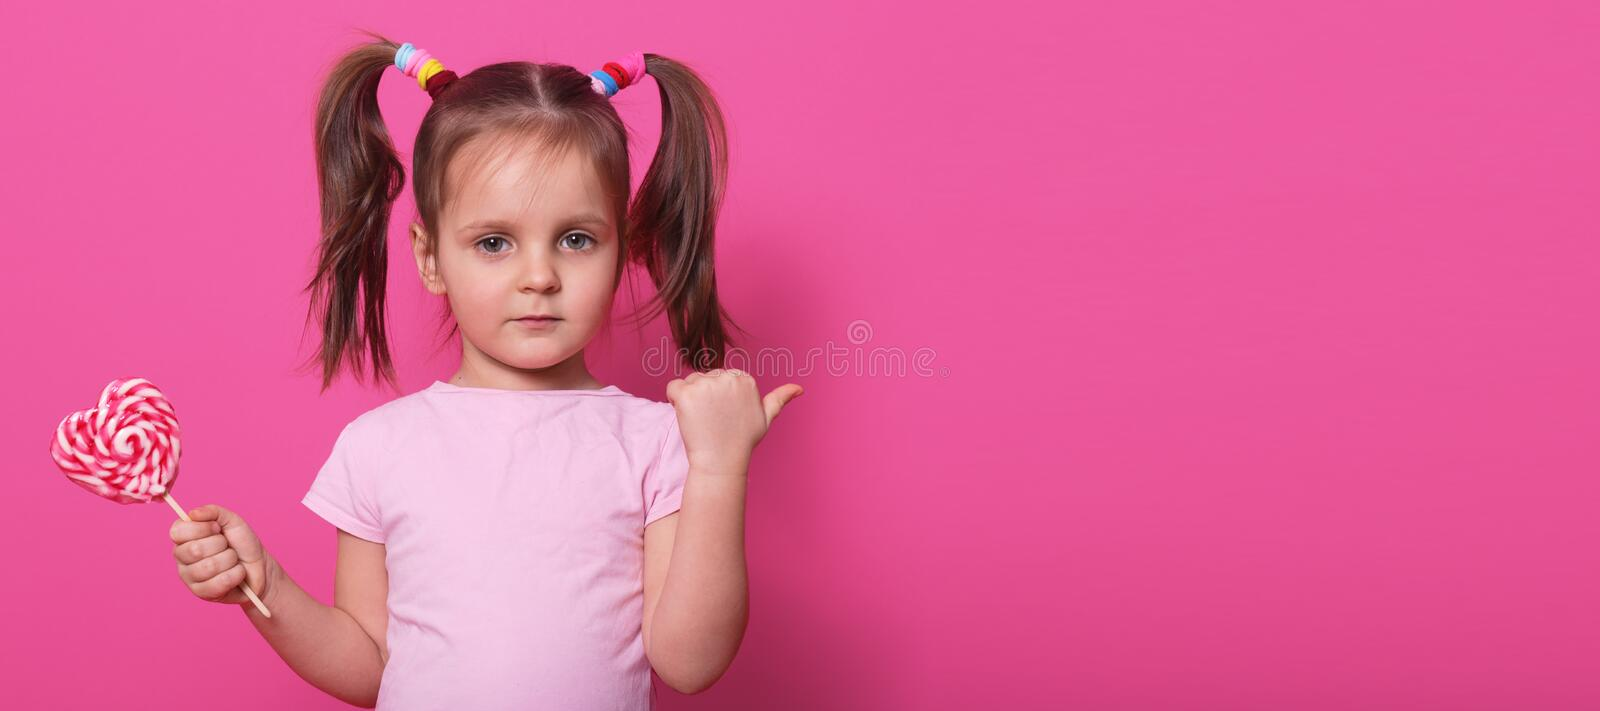 Close up portrait of little cute child, looking directly at camera, holding heart bright lollipop, pointing aside with her thumb, stock images